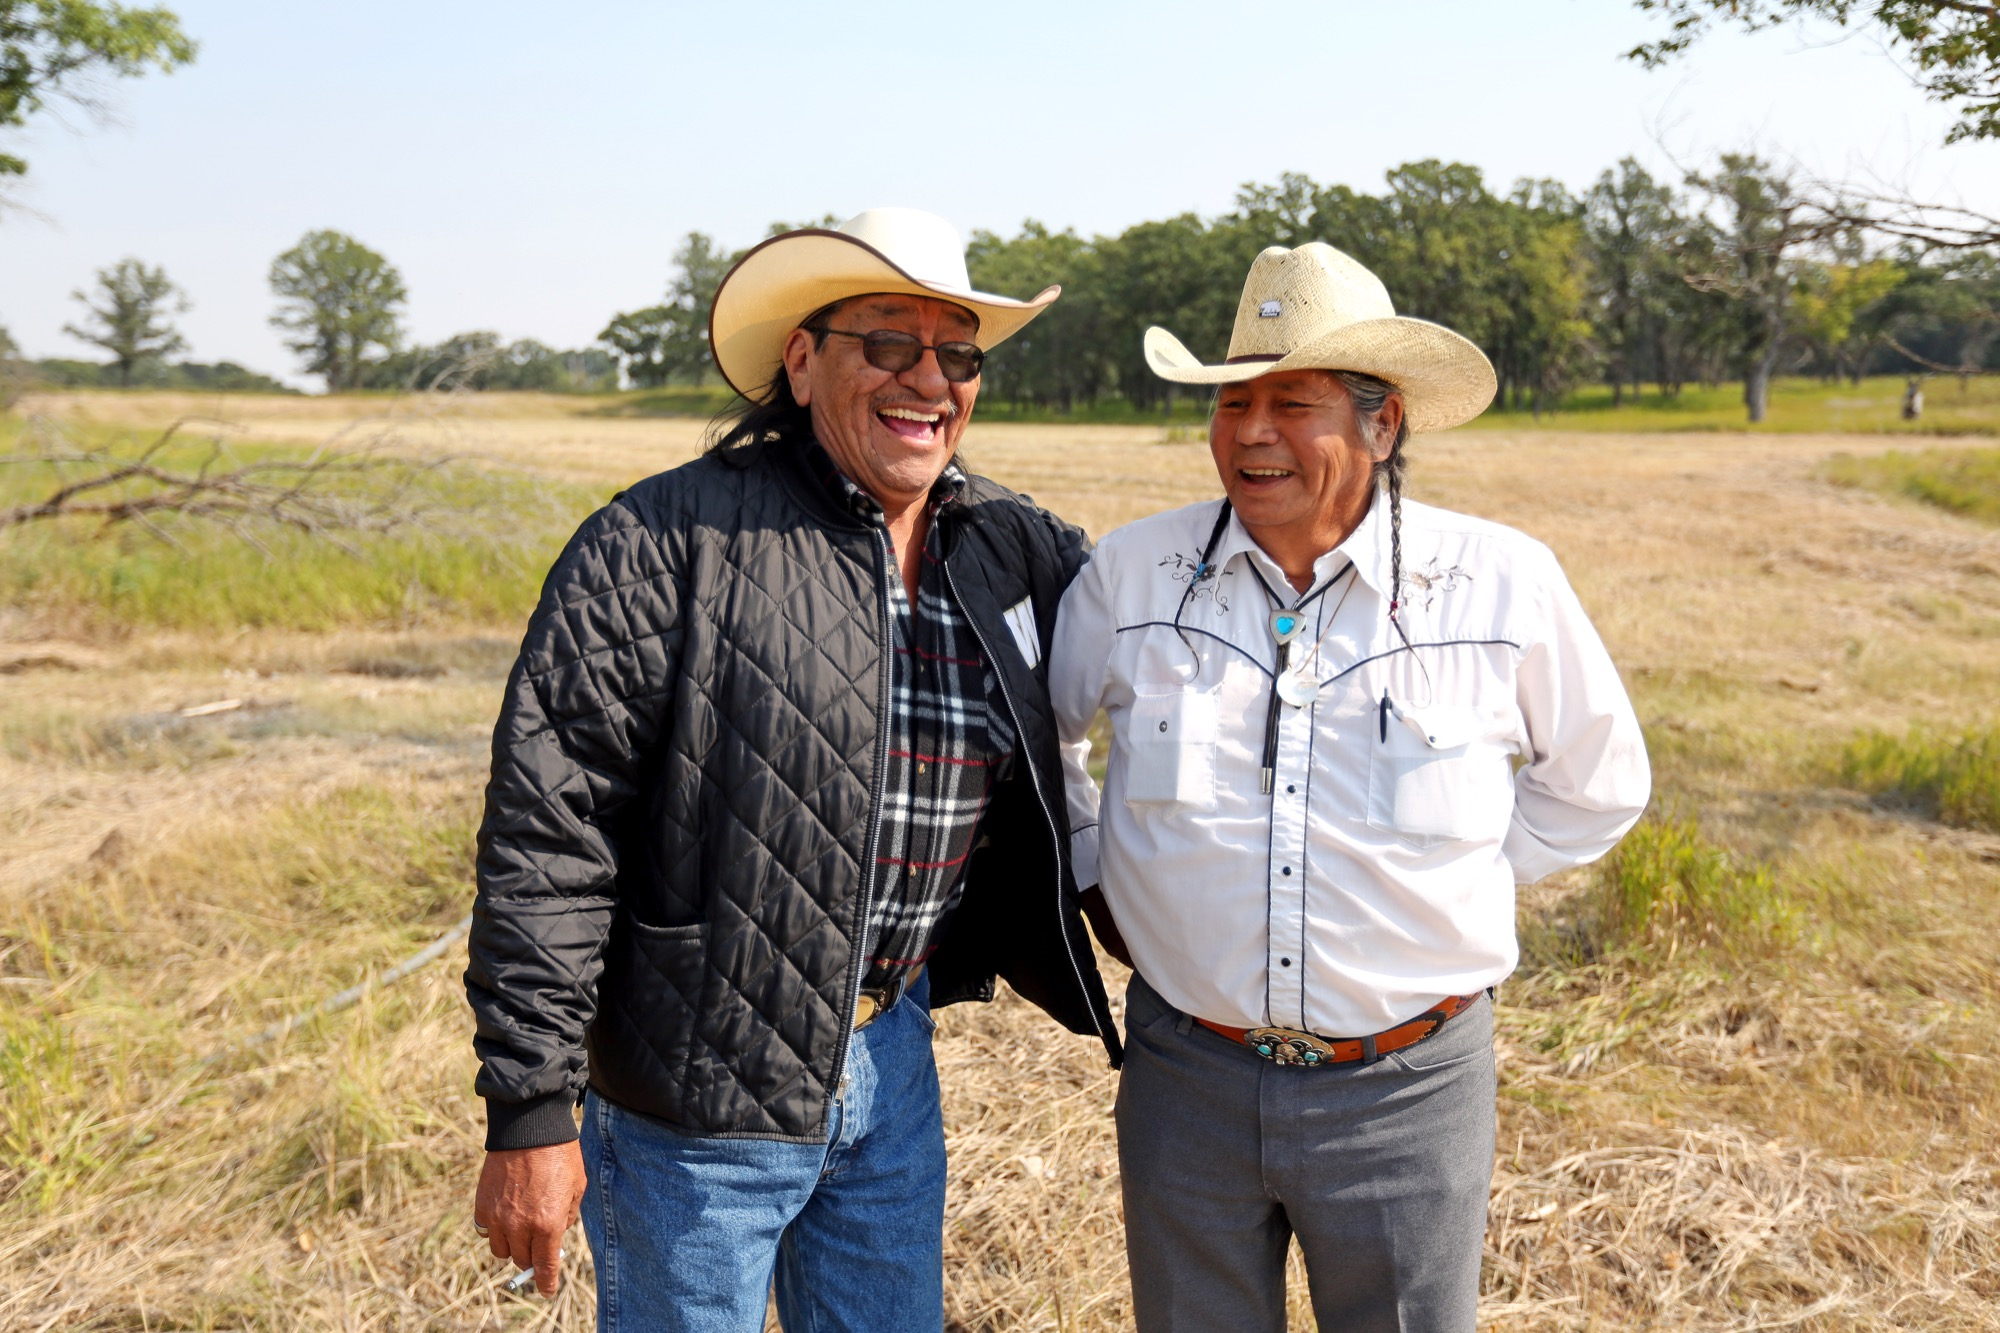 Robert Mentuck and Norbert Tanner of Waywayseecappo First Nation attended the Residential School Survivors Gathering at the site of the former Brandon Indian Residential School just west of the city.